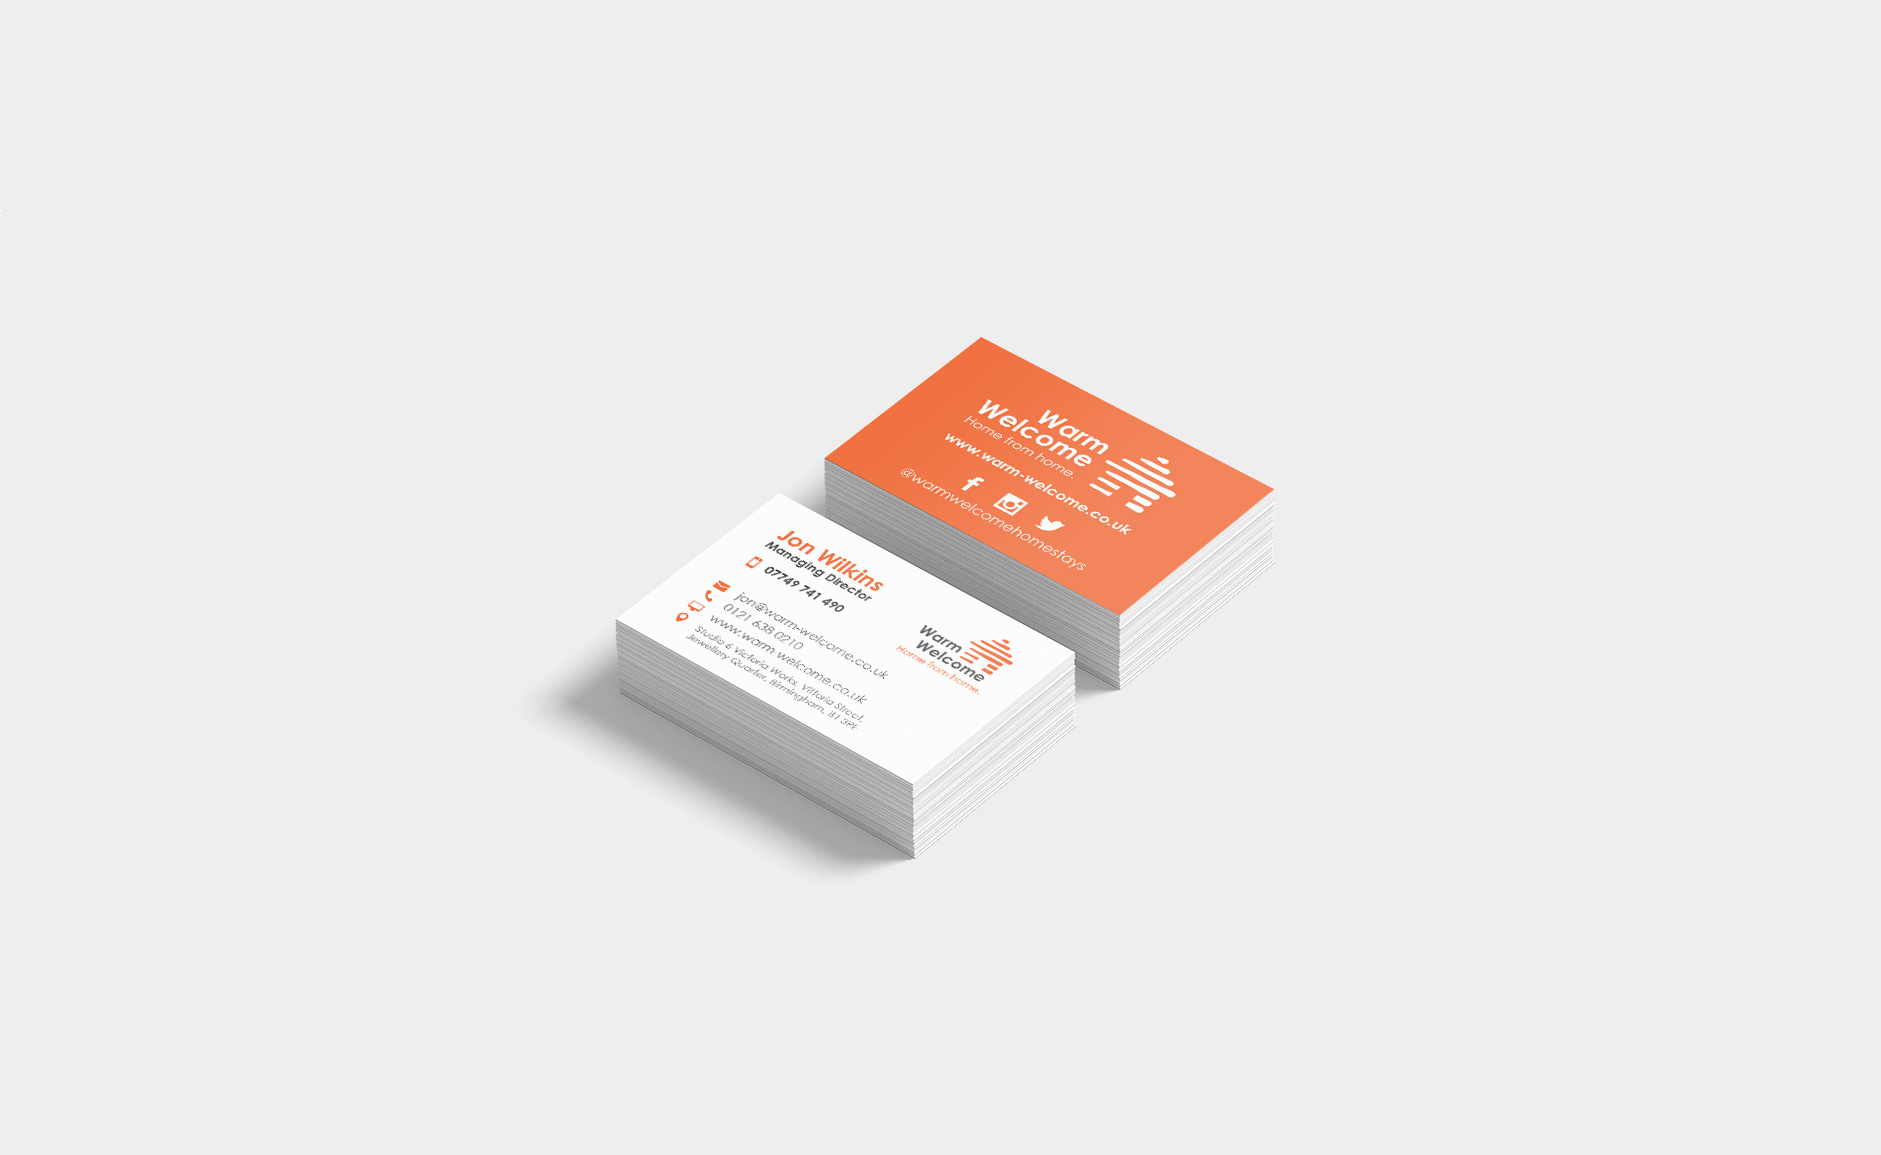 mockups of business cards produced by paddle creative. On a square background with cards stacked